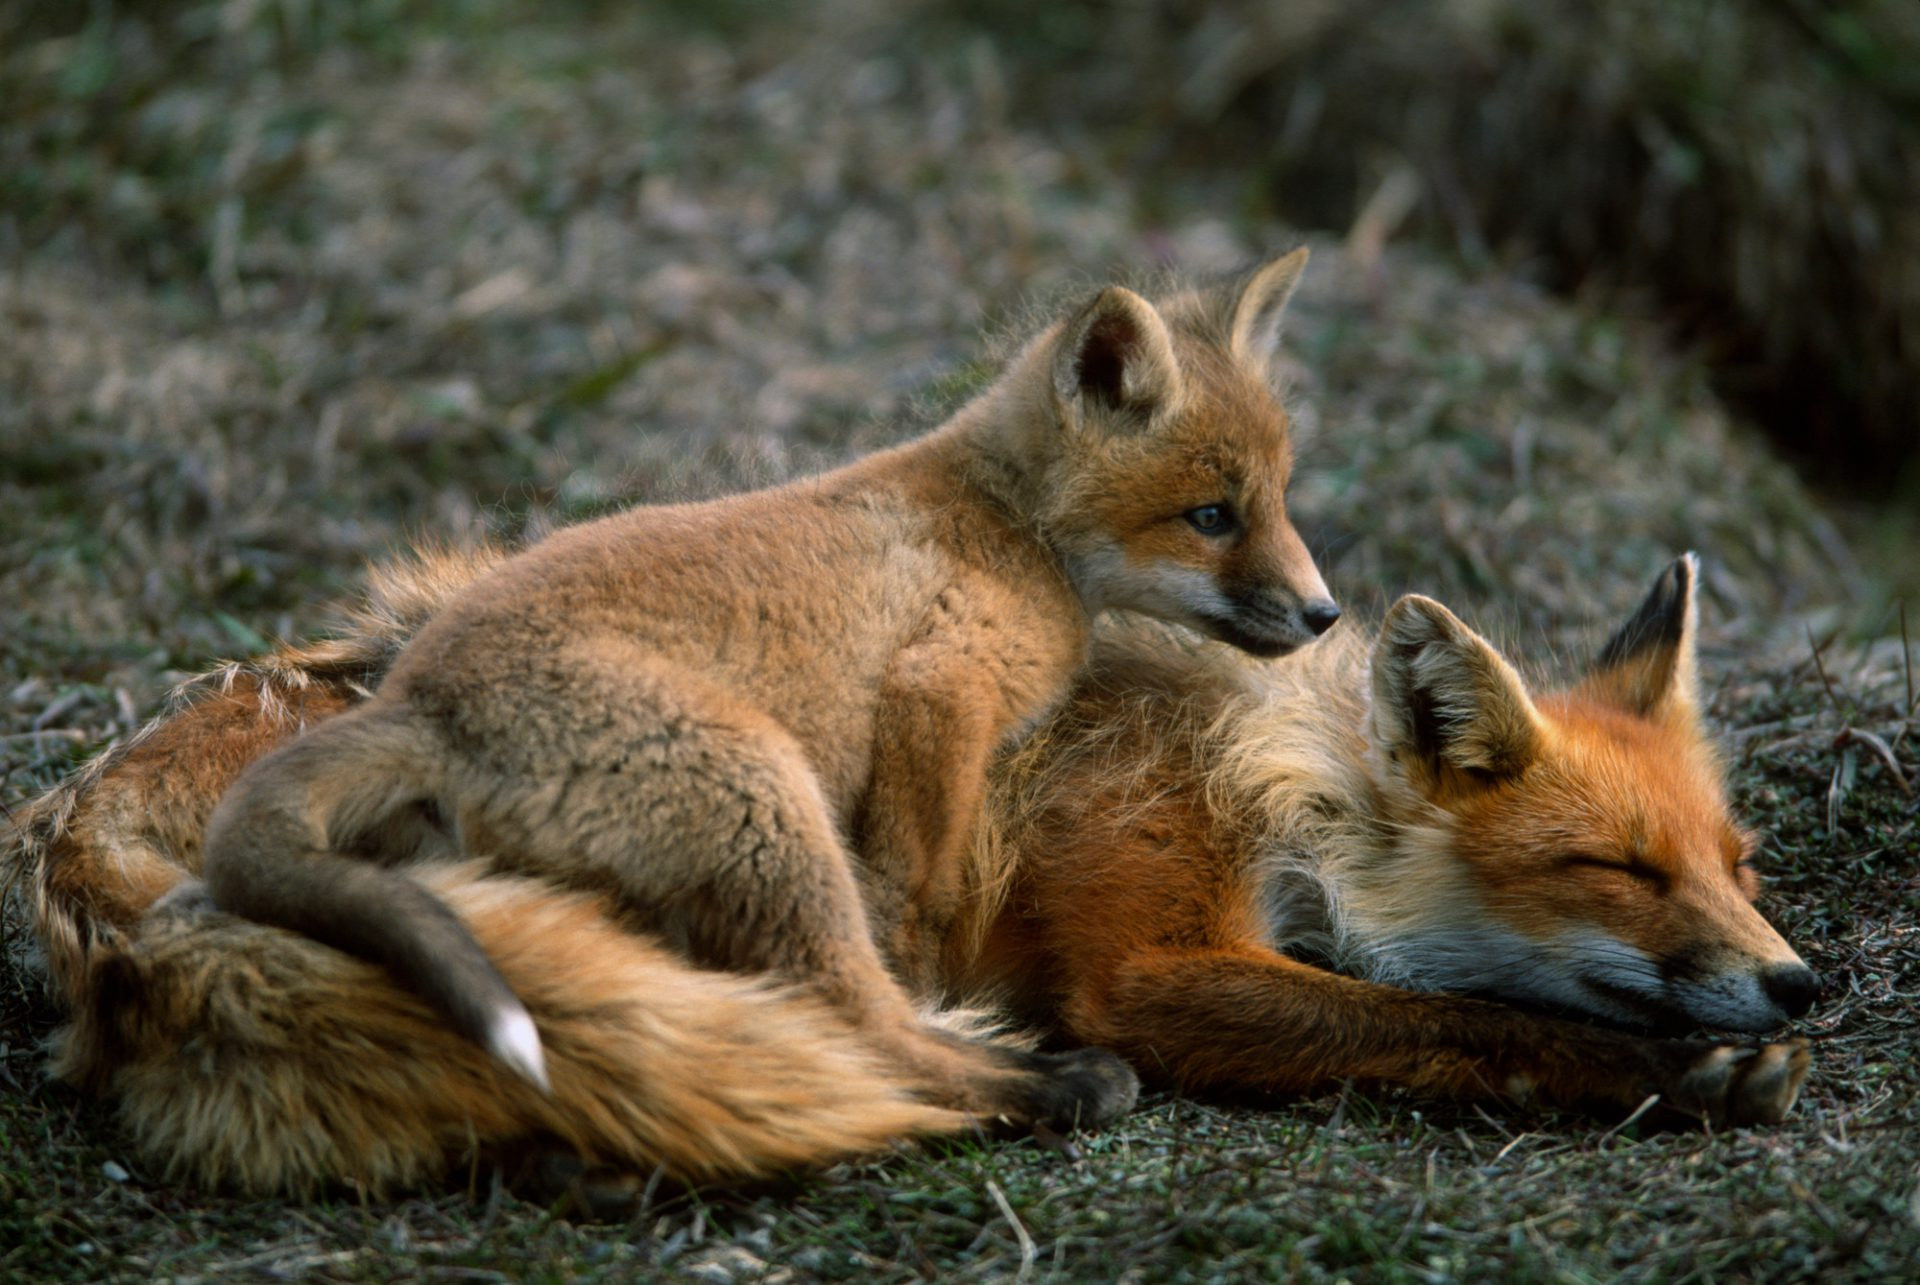 A red fox (Vulpes vulpes) and kit at the edge of an oil field on Alaska's North Slope near Prudhoe Bay.